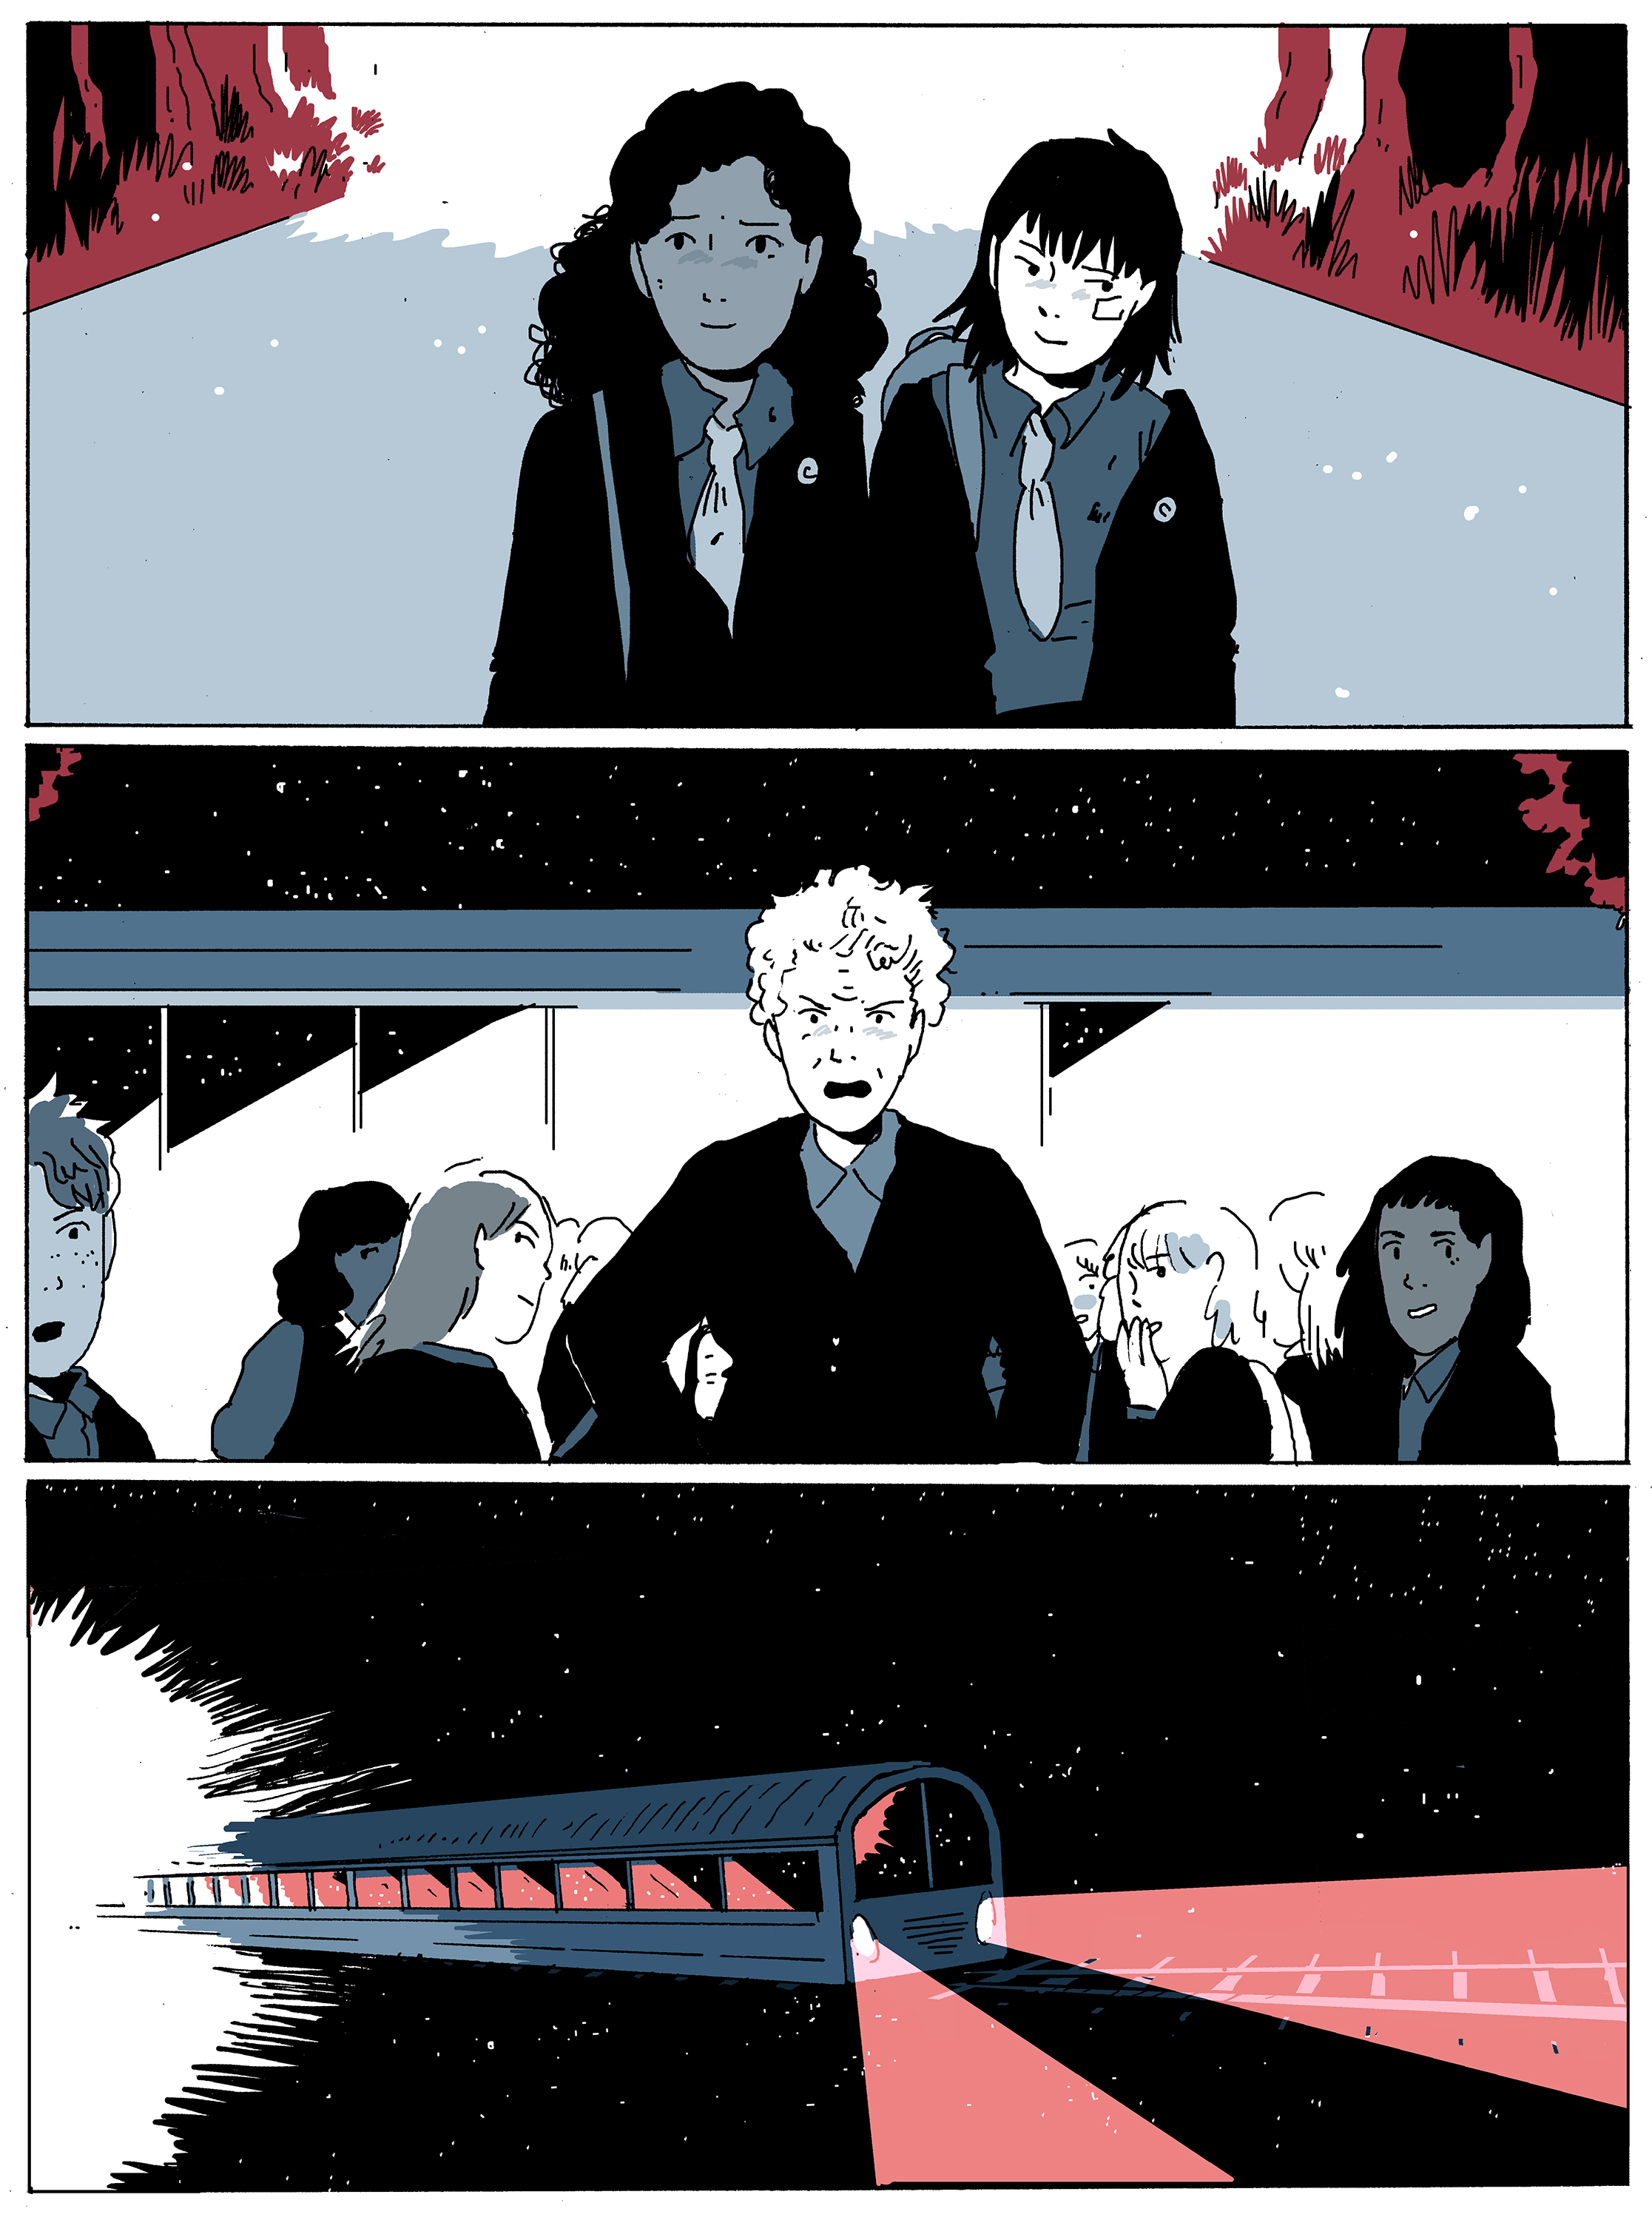 chapter06_page14.jpg